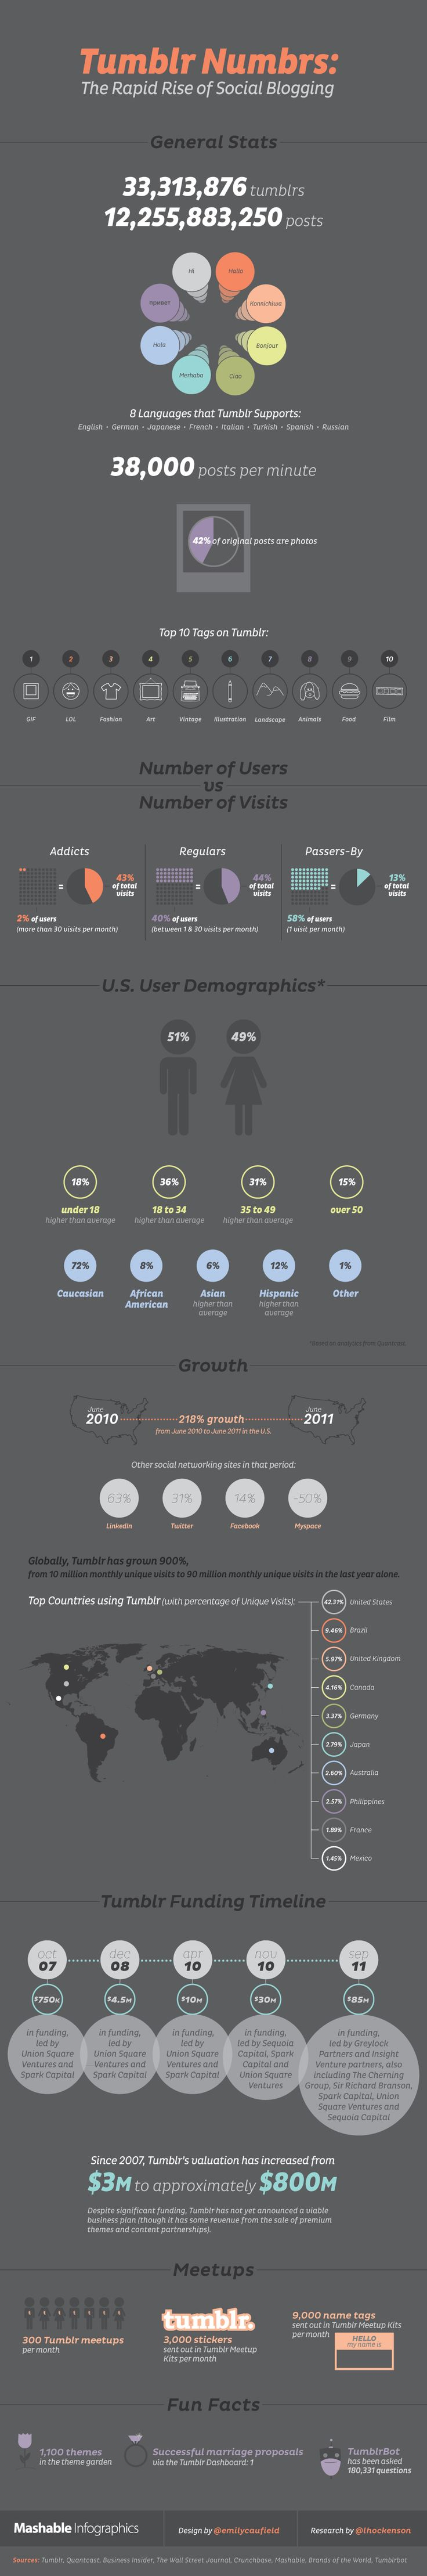 [Tumblr Infographic: Check Out How Tumblr Has Grown!] Tumblr has certainly seen some tremendous growth over a very short period of time.    With more and more users taking part in the platform on a daily basis, Mashable has put together a nice infographic showing the rise of the Tumblr platform over the years.    Included are some really cool (and very specific) facts about the platform, including numbers of new users, number of themes, and all other sorts of facts about Tumblr.